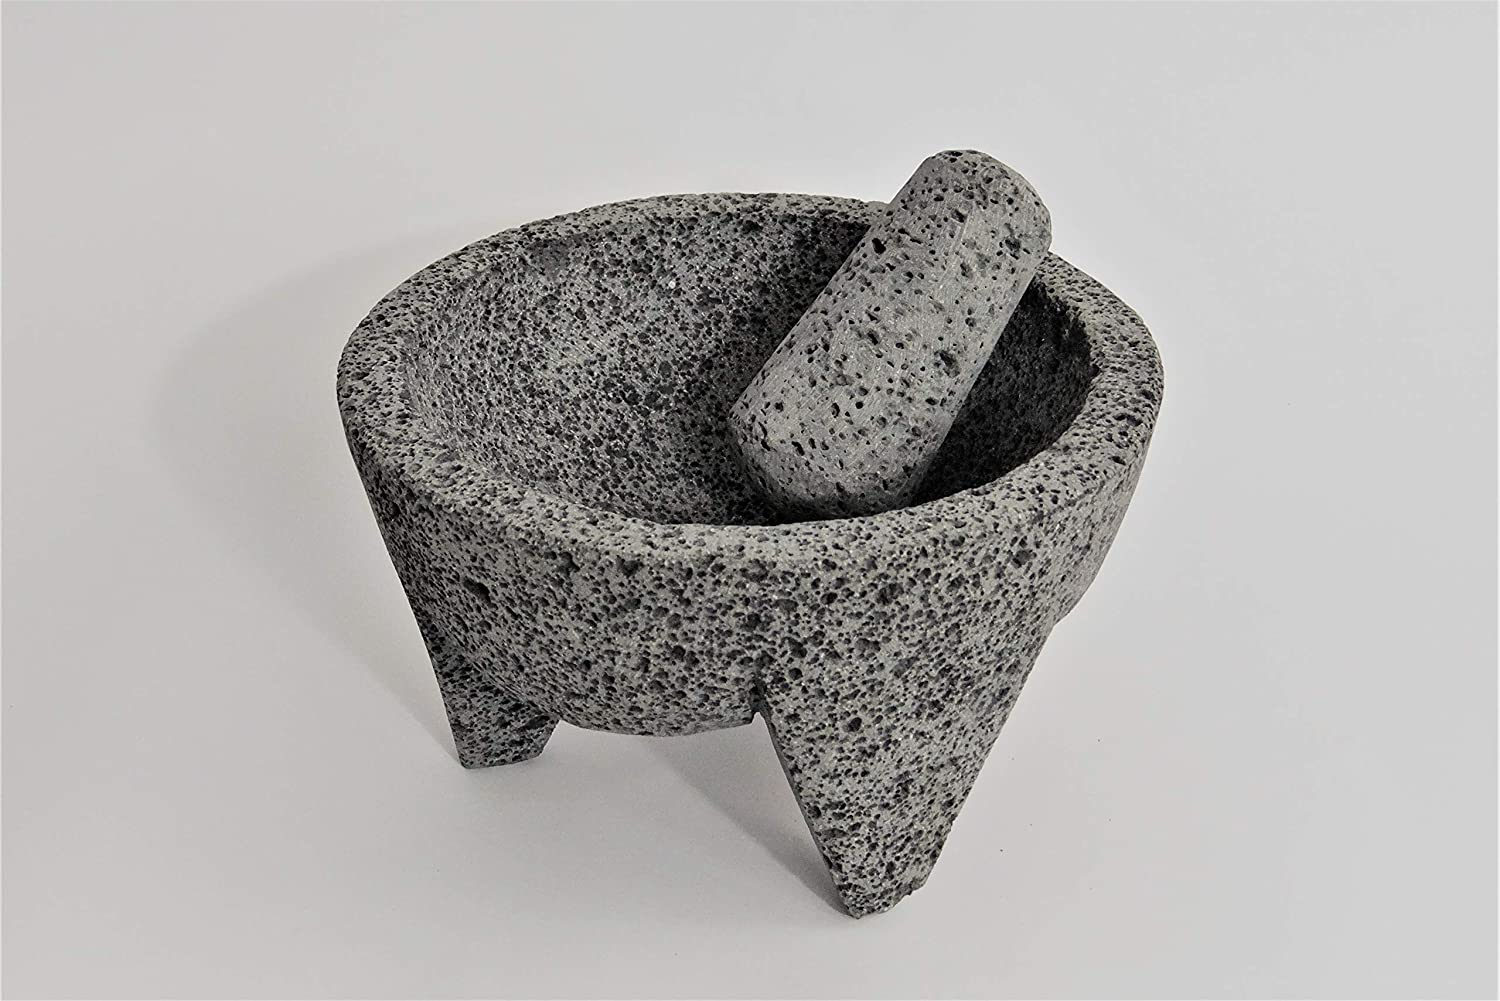 Molcajete Authentic Handmade Mexican Mortar and Pestle 8 by CUBIXAR